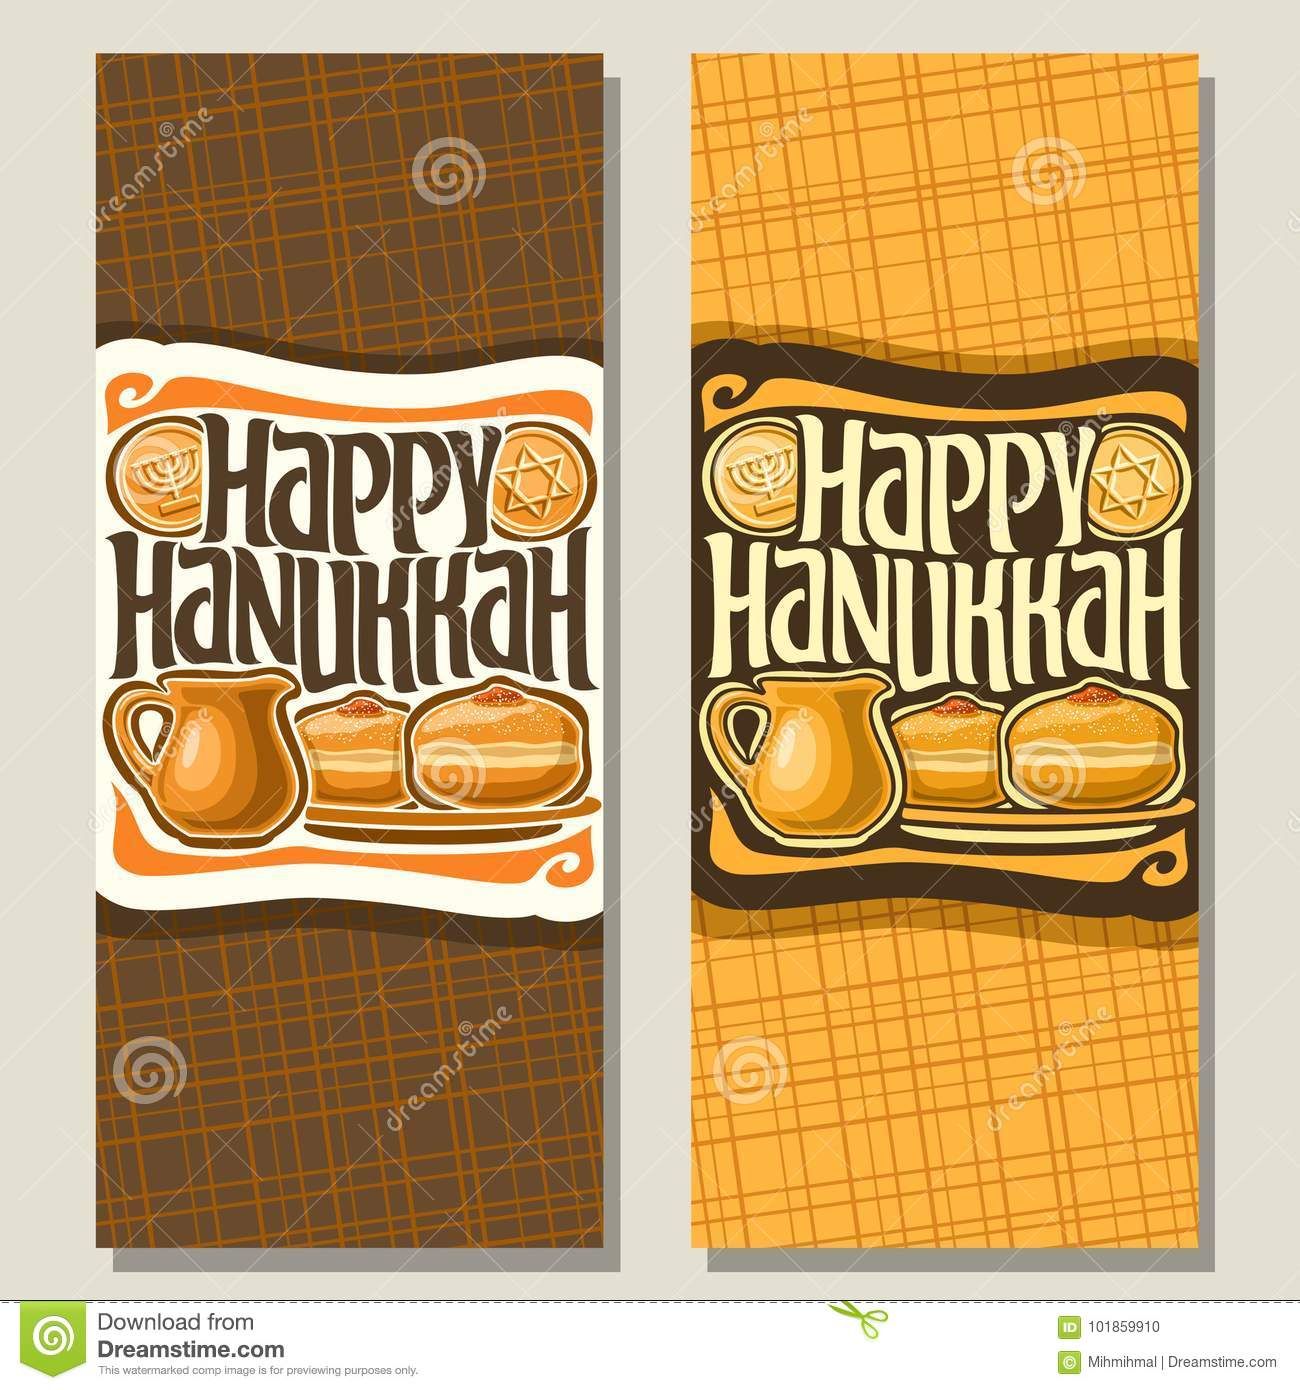 Vector vertical banners for hanukkah stock vector illustration of vector vertical banners for hanukkah holiday greeting cards with chocolate gelt coins oil jug sufganiyot doughnuts on plate original decorative font m4hsunfo